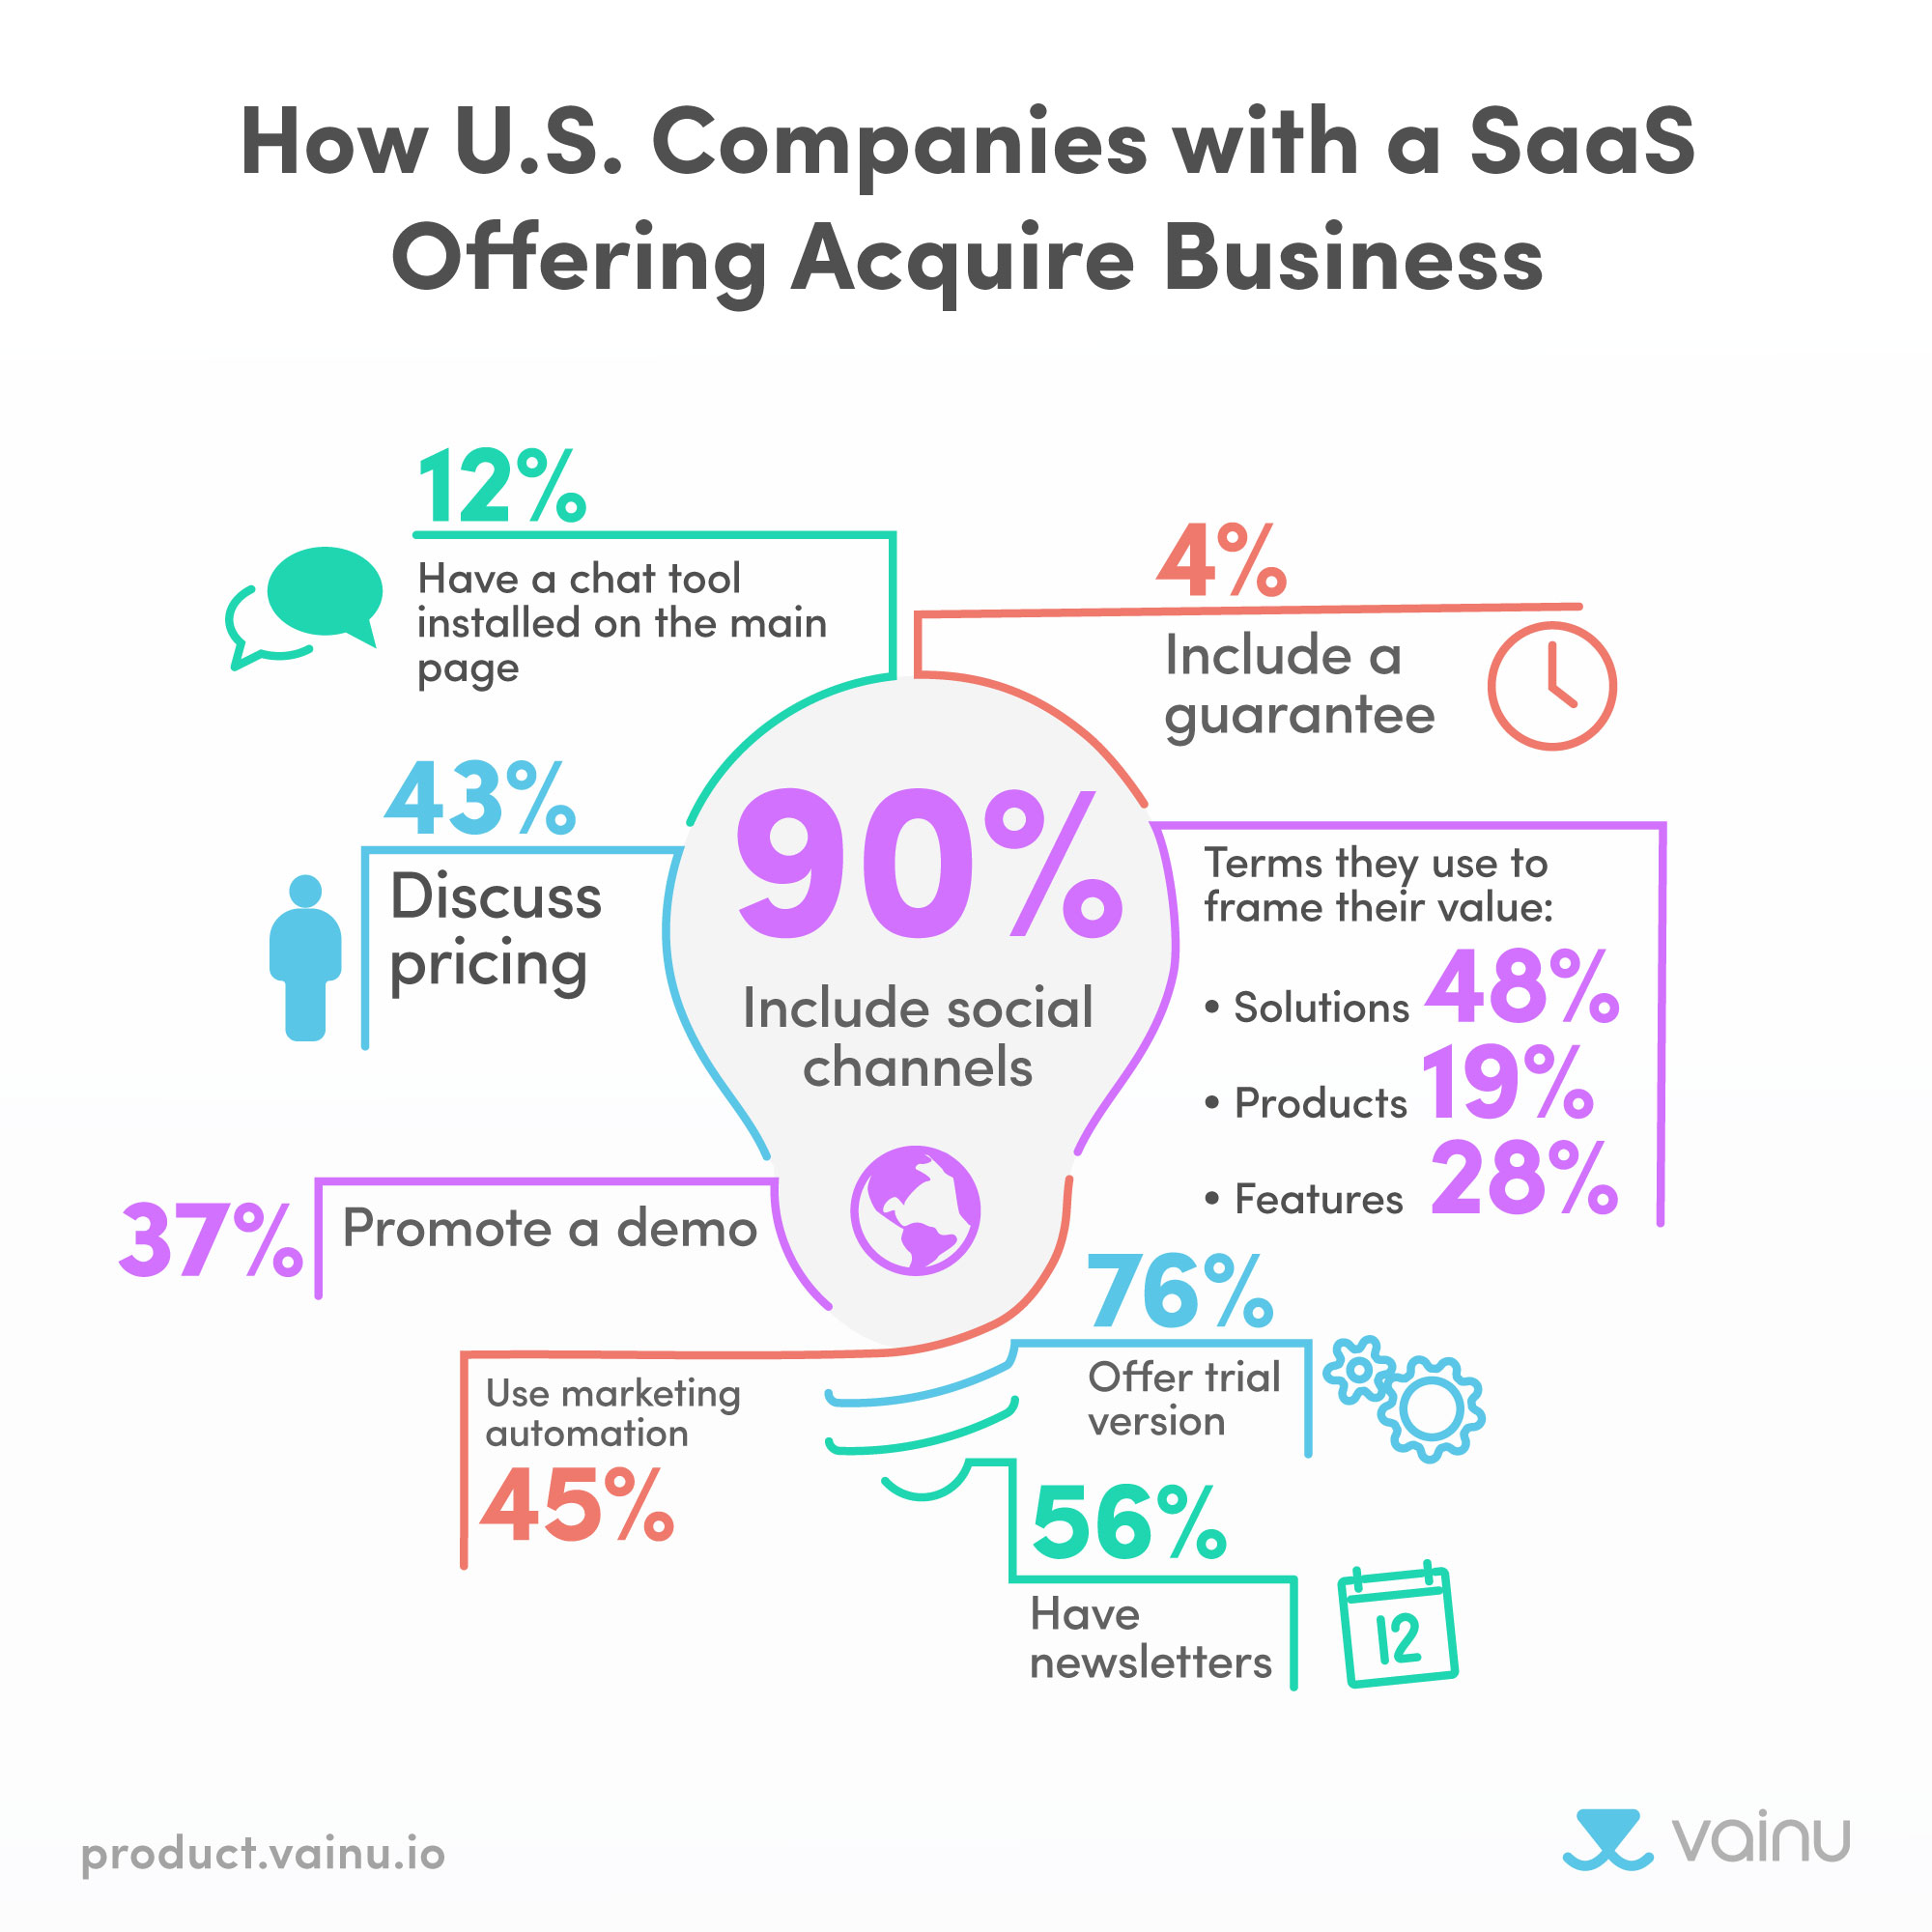 how-u.s.acquire-business-5.jpg